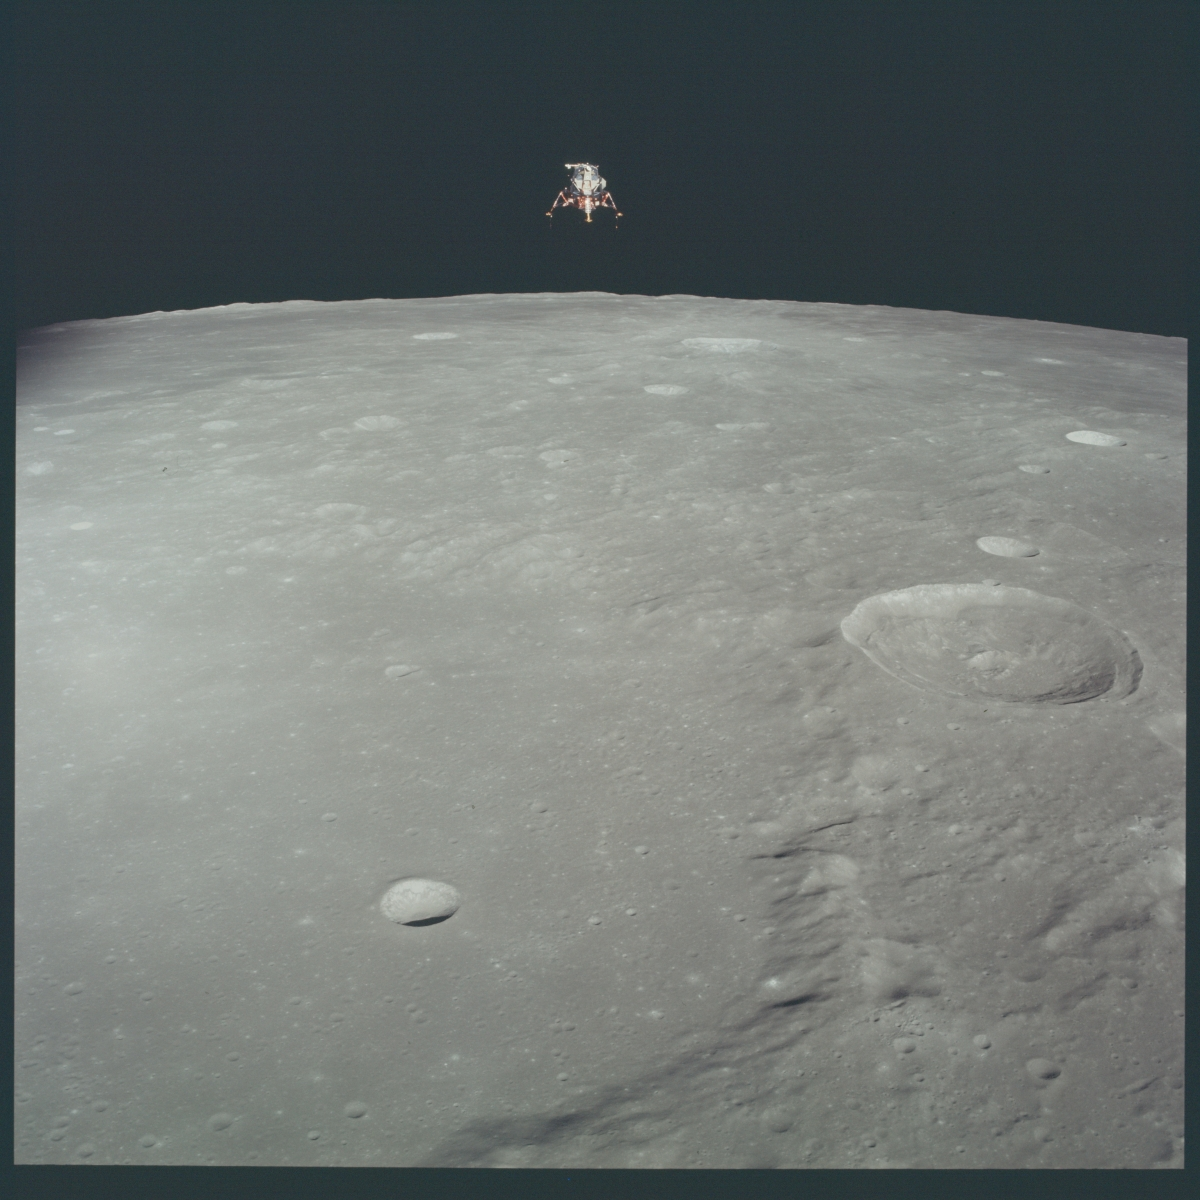 nasa archive photos of moon - photo #4